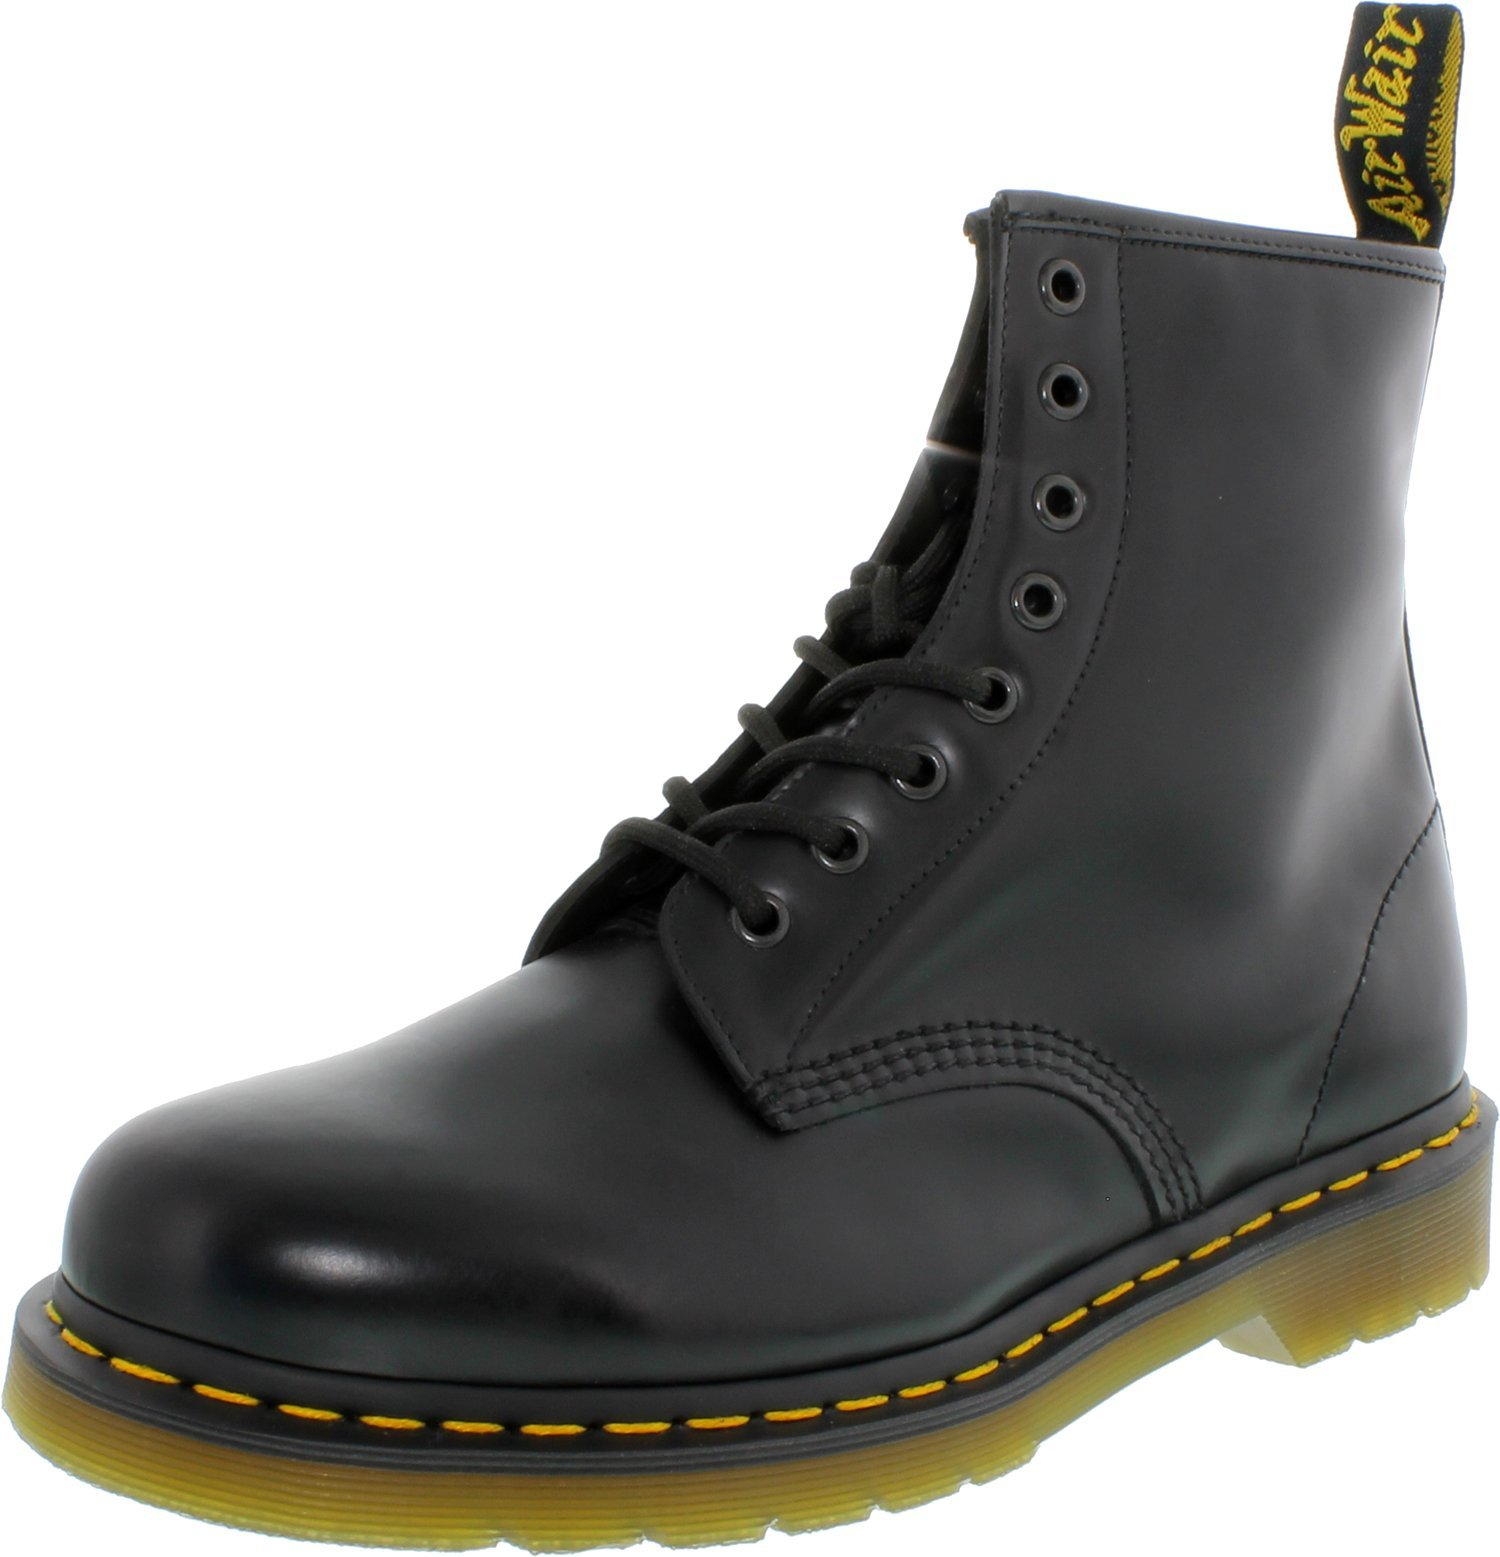 Dr. Martens Unisex 1460 8 Eye Black Smooth Unisex Boots in Size 11 men US (10 UK / 45 EU) Black